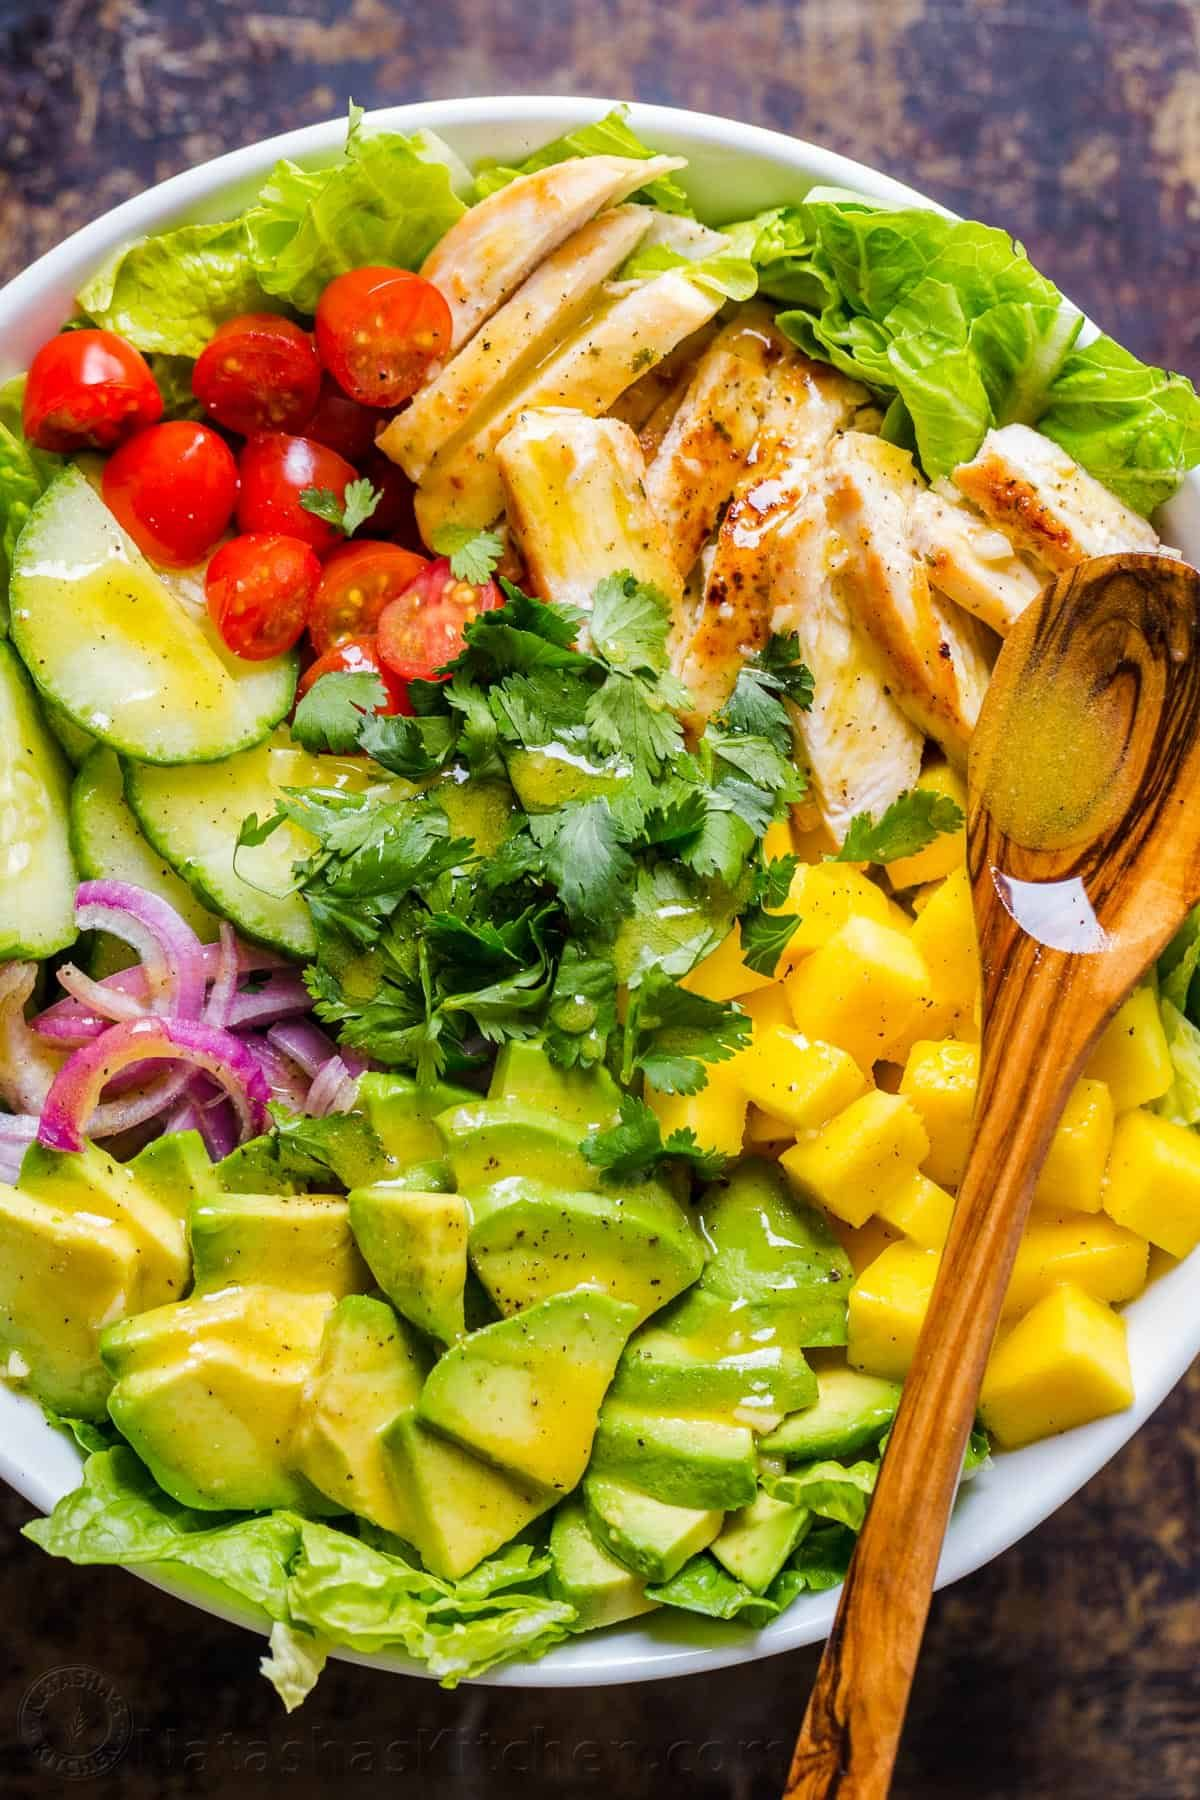 This Chicken Mango Avocado Salad recipe is loaded with juicy chicken, creamy avocado and that sweet